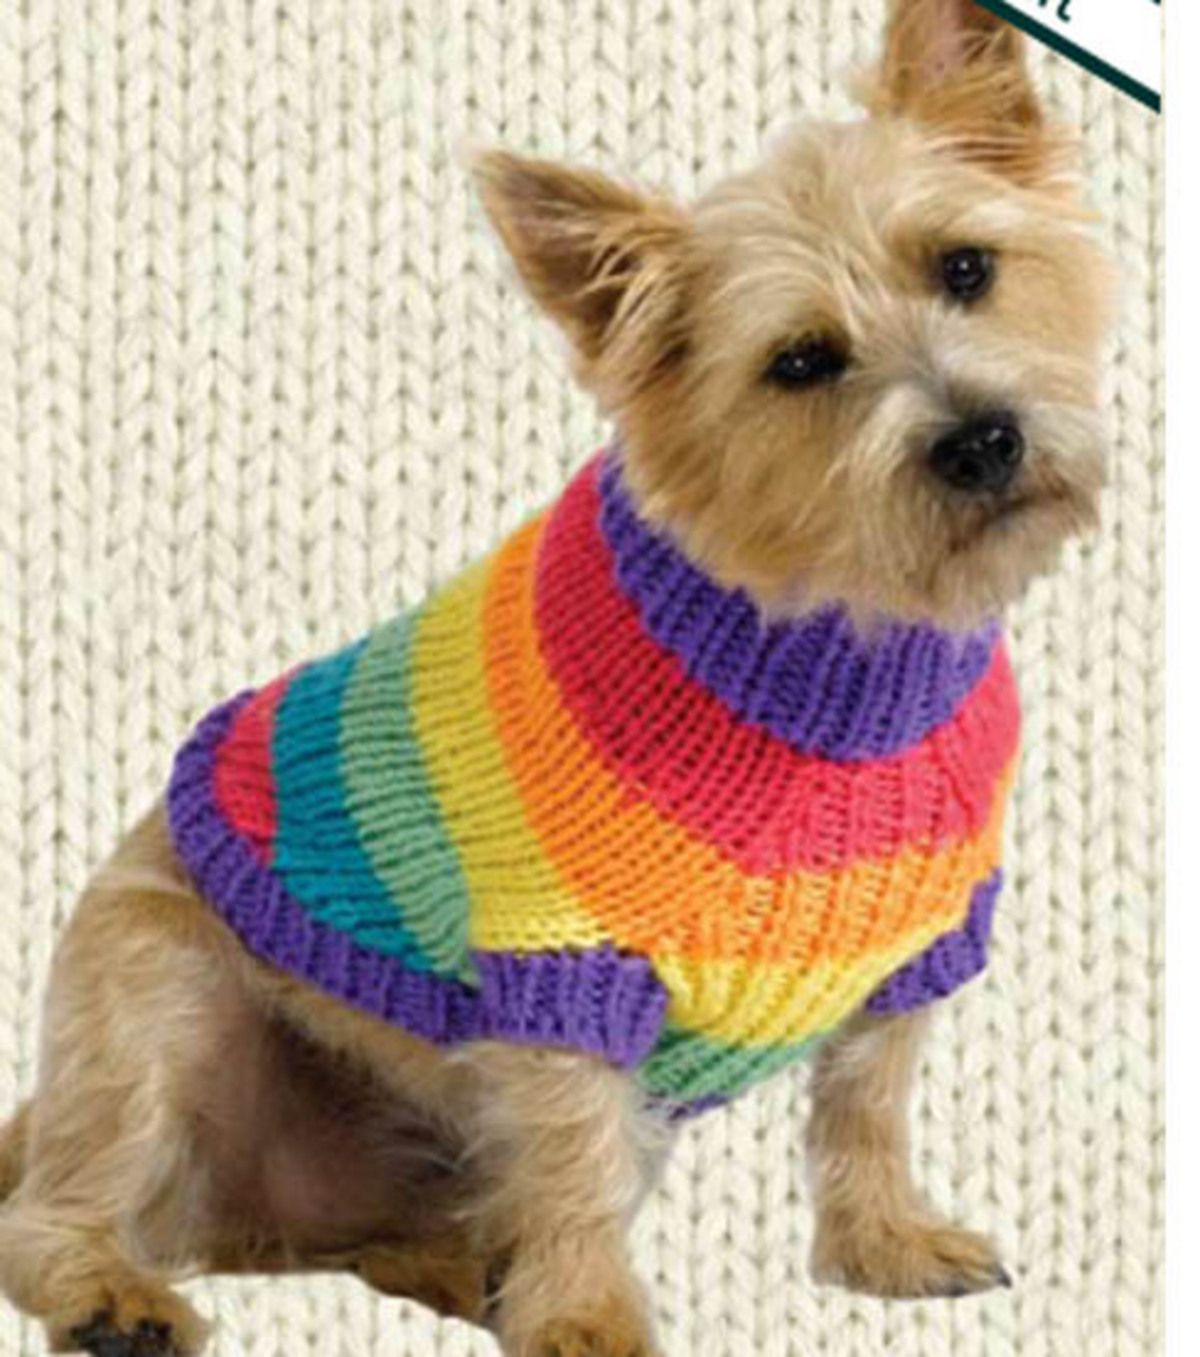 Pooch\'s Rainbow SweaterPooch\'s Rainbow Sweater | Pet Love ...